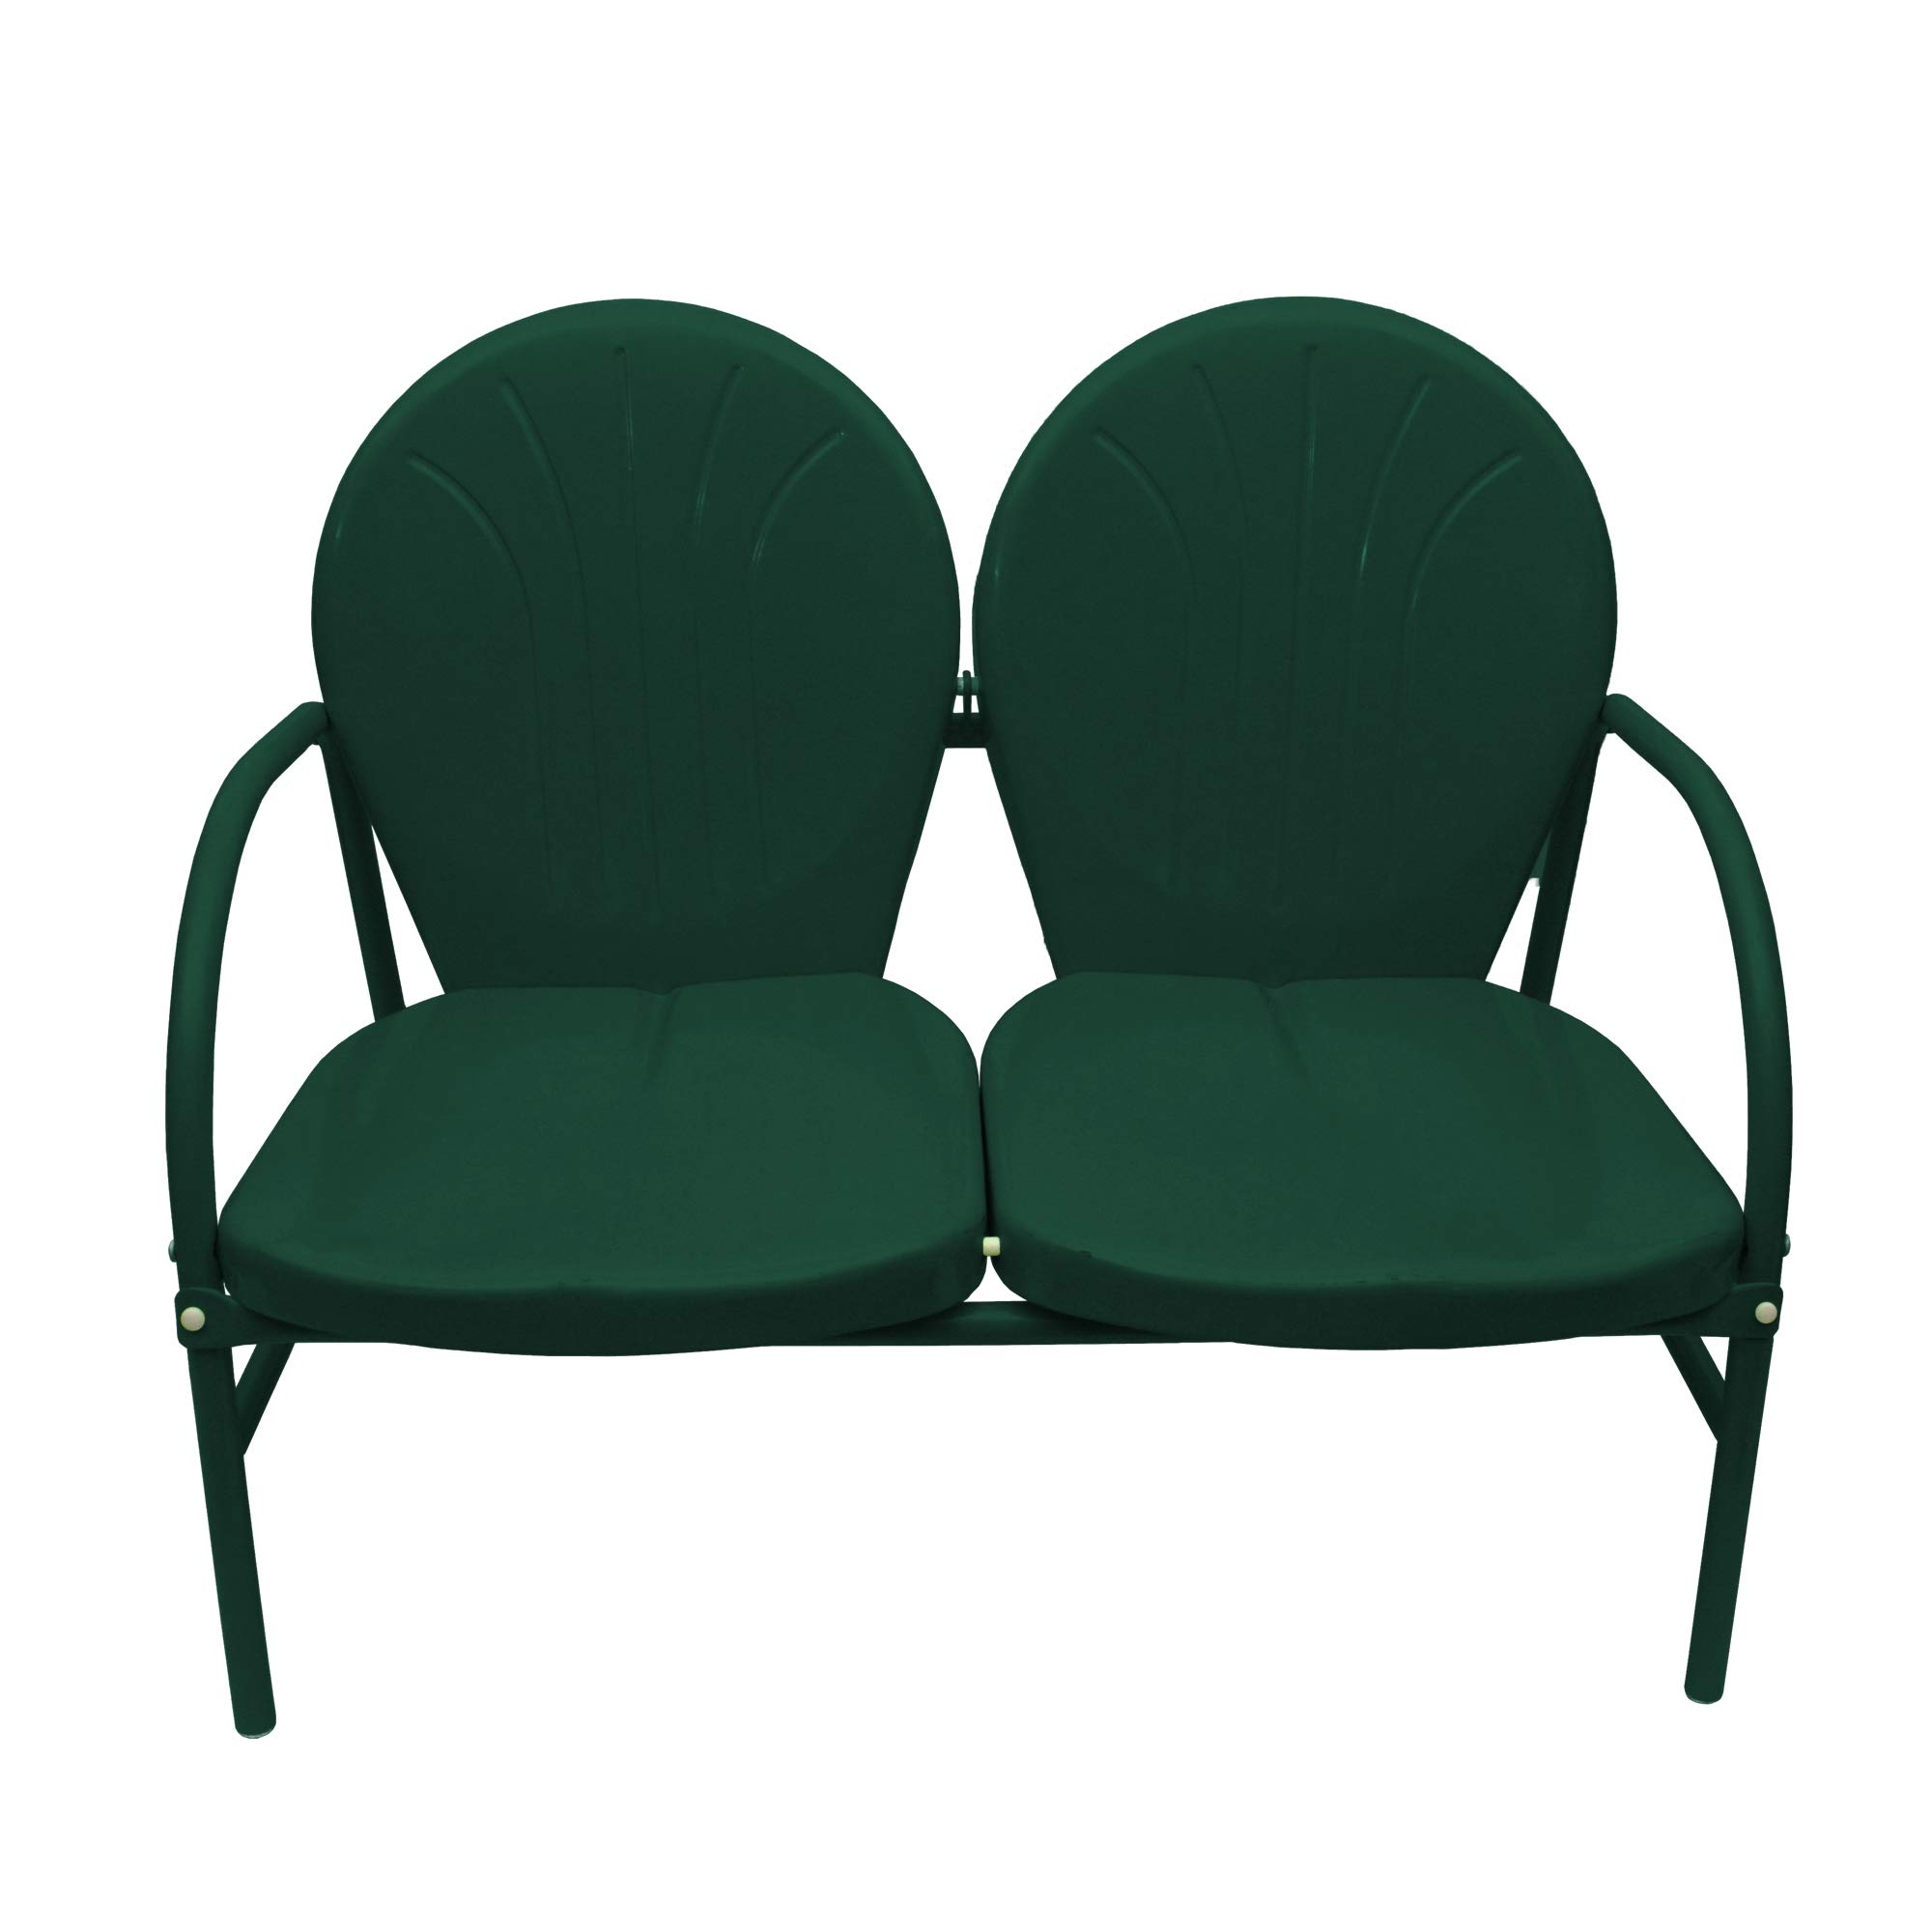 Rich Pacific 41'' Hunter Green Retro Metal Tulip Outdoor Double Chair by Rich Pacific